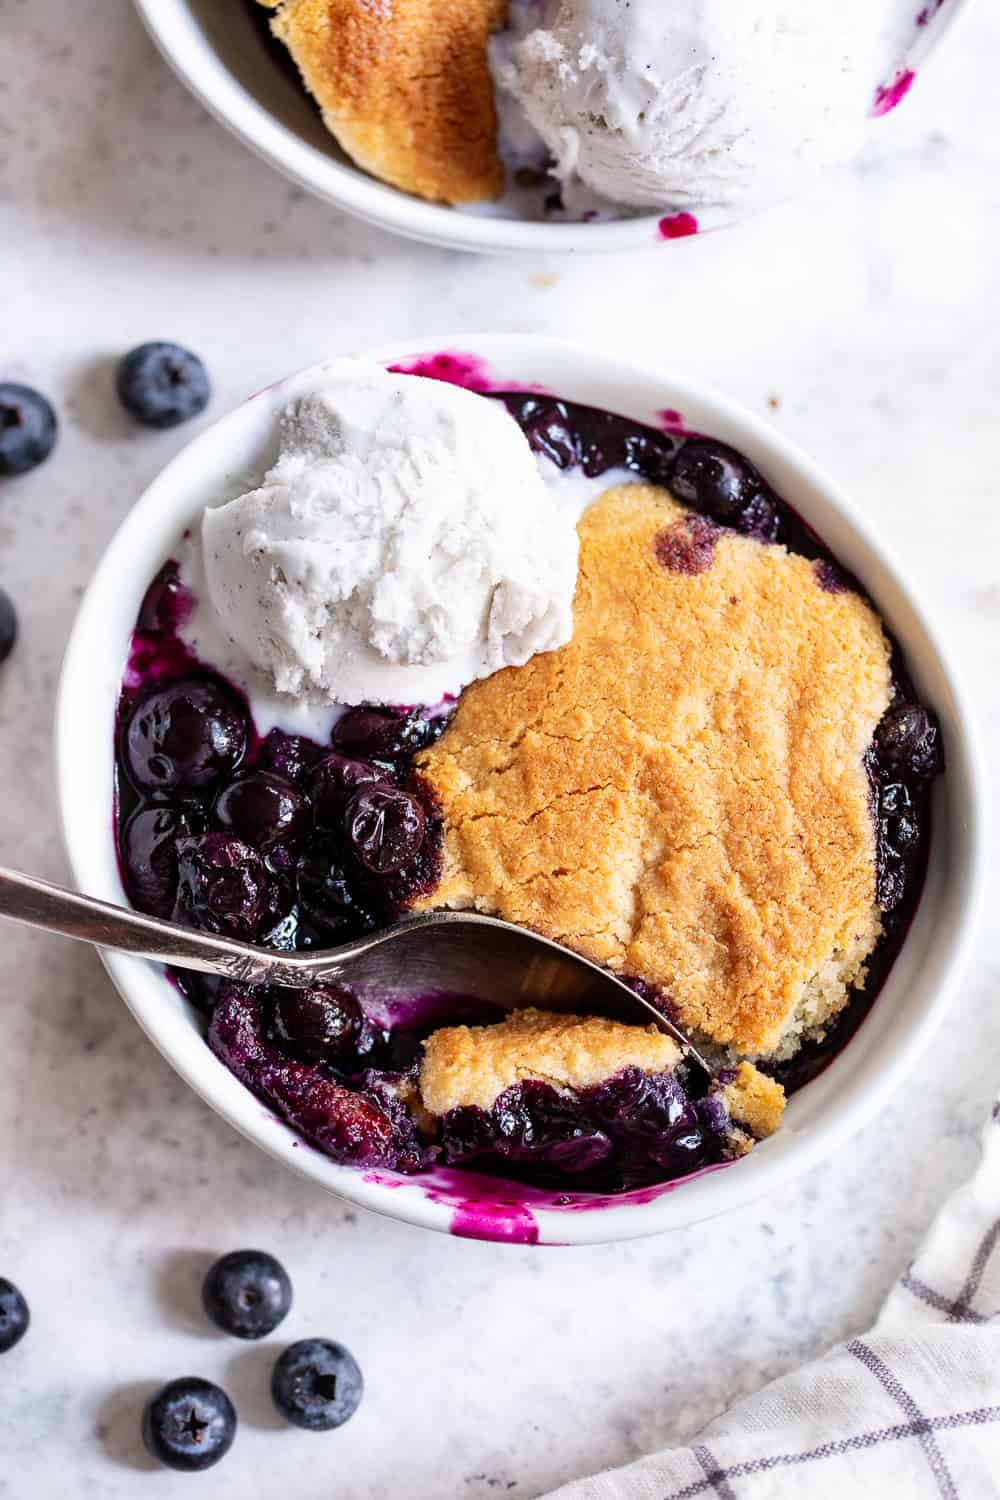 This paleo and vegan blueberry cobbler has quickly become a family favorite!  A sweet gooey blueberry layer is baked with a biscuit cobbler topping that's gluten free, dairy free, and egg free.  It's perfect served with a big scoop of coconut vanilla ice cream or on its own!  Easy to make and the perfect healthy dessert for Spring and Summer. #paleo #vegan #cobbler #glutenfree #paleobaking #cleaneating #glutenfreedessert